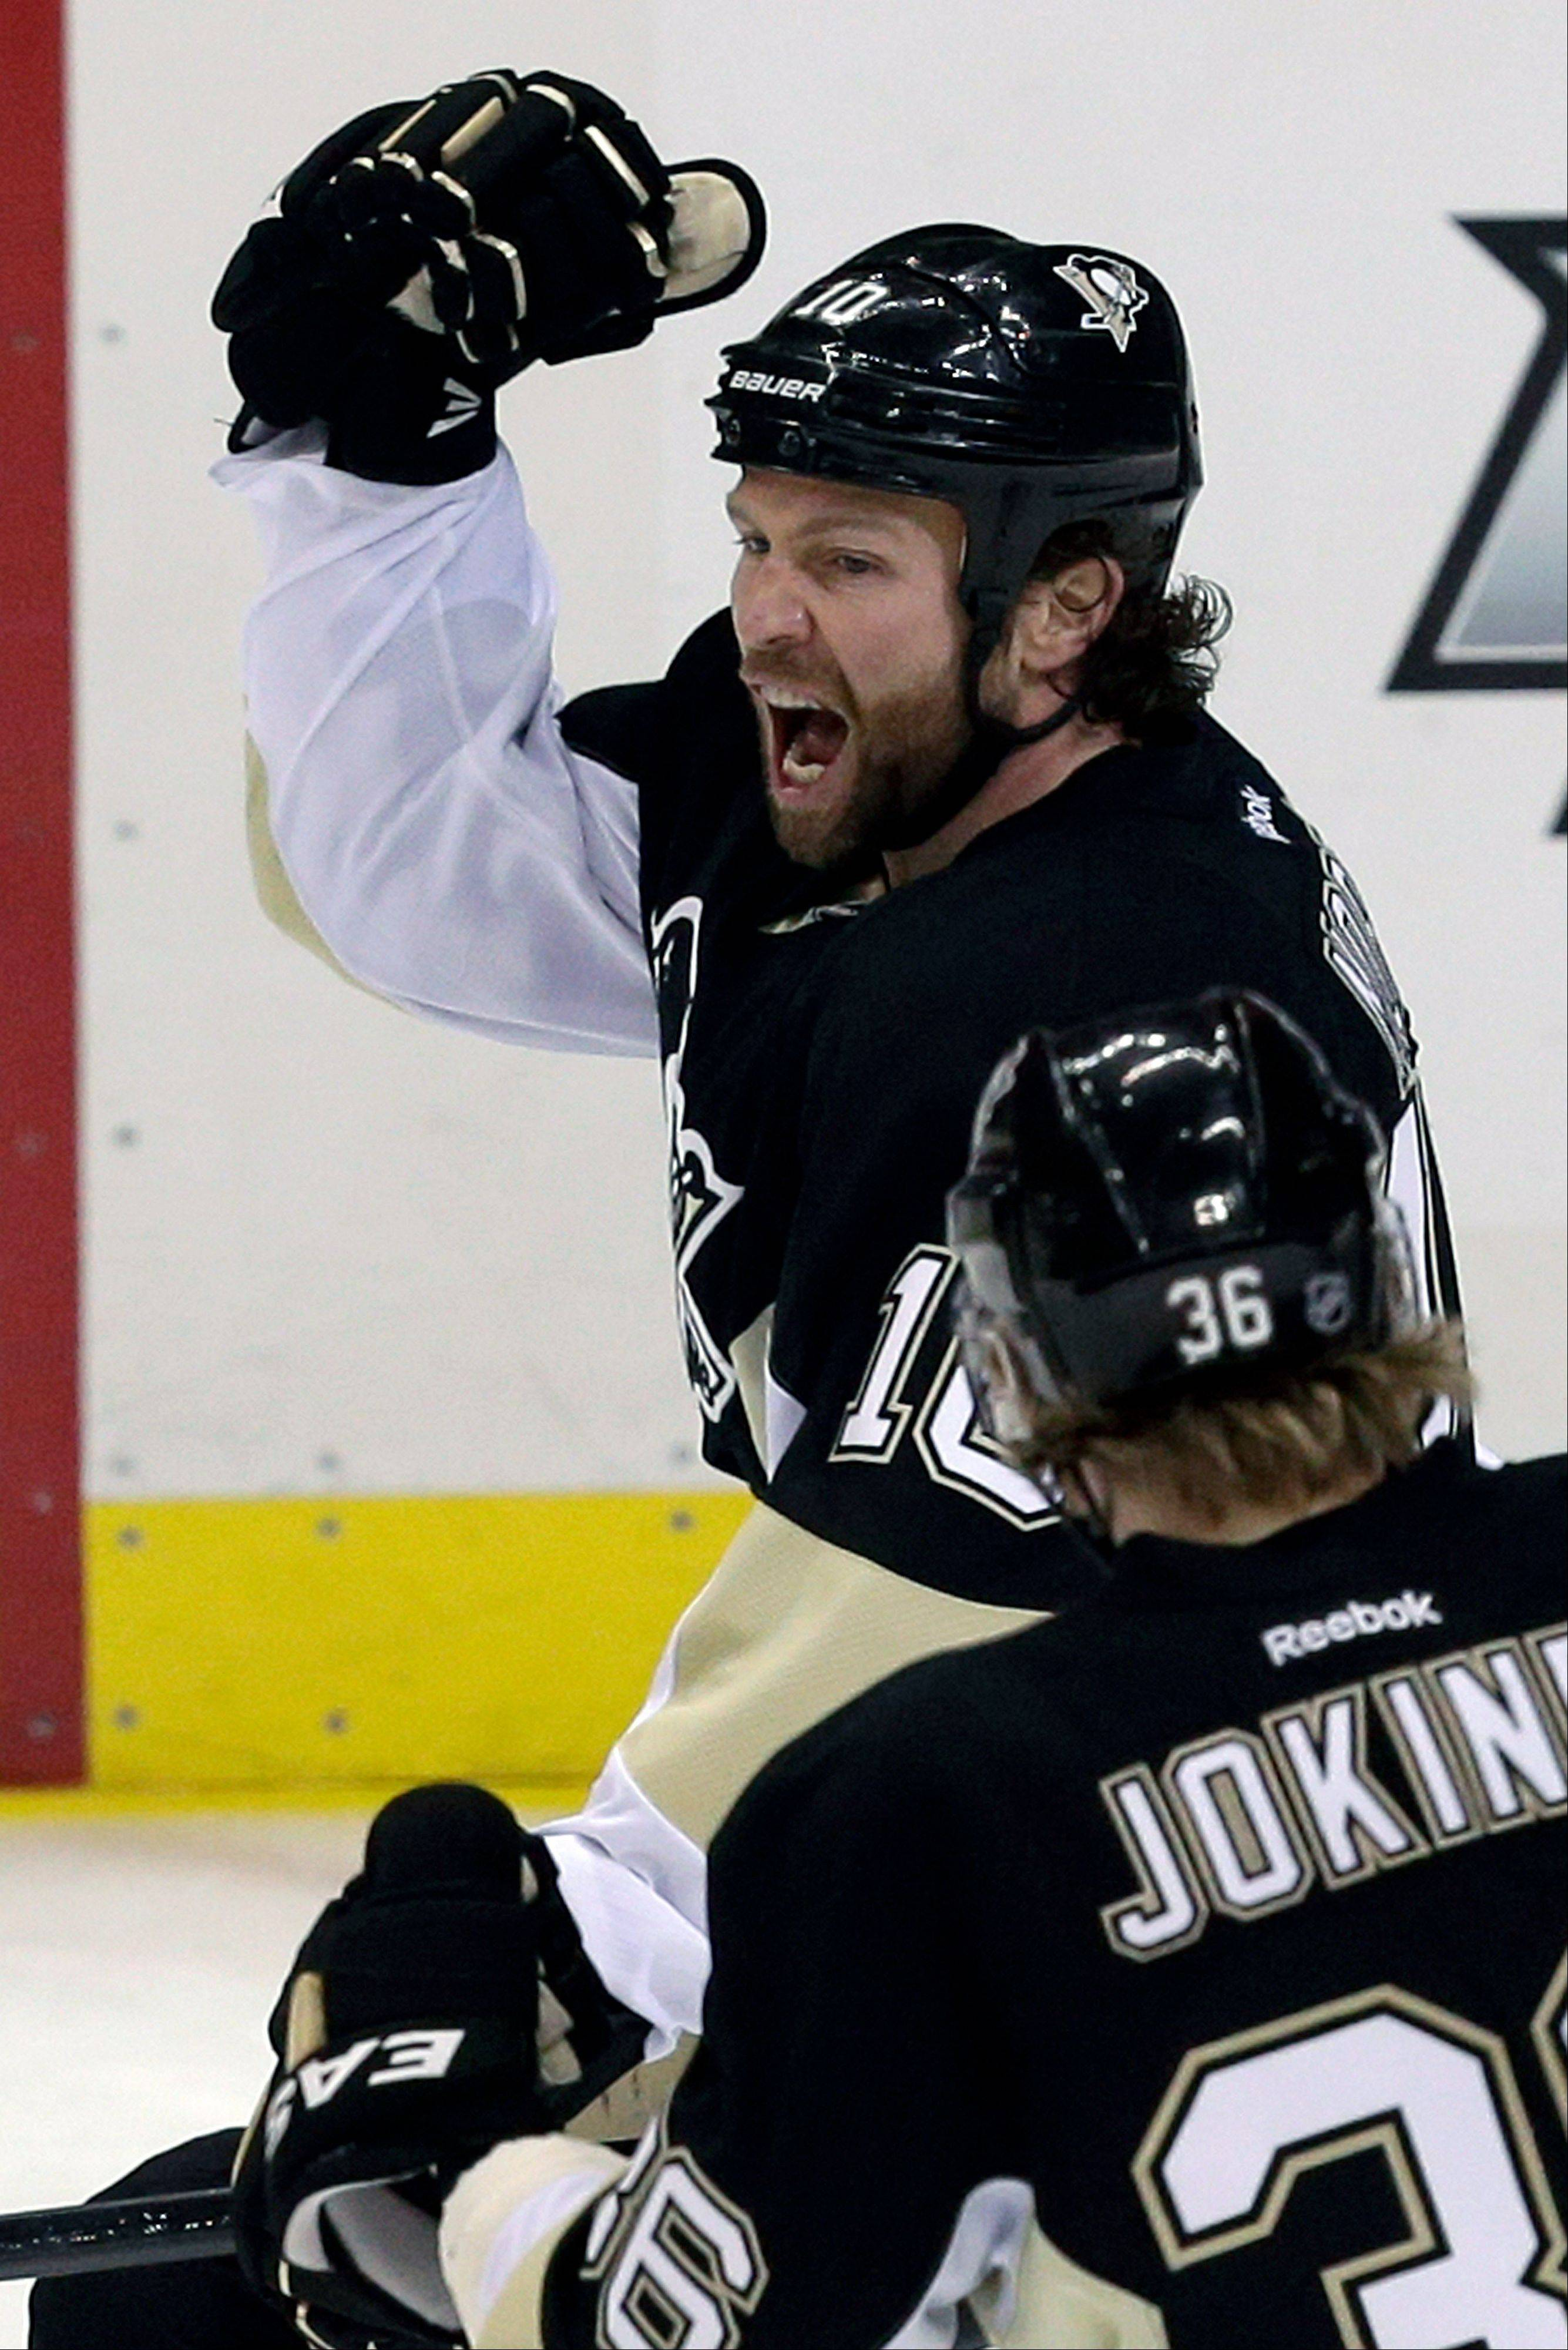 Pittsburgh Penguins' Brenden Morrow (10) celebrates his first-period goal with teammate Jussi Jokinen (36) in Game 5 of the Eastern Conference semifinals in their NHL hockey Stanley Cup playoffs series, Friday, May 24, 2013, in Pittsburgh.